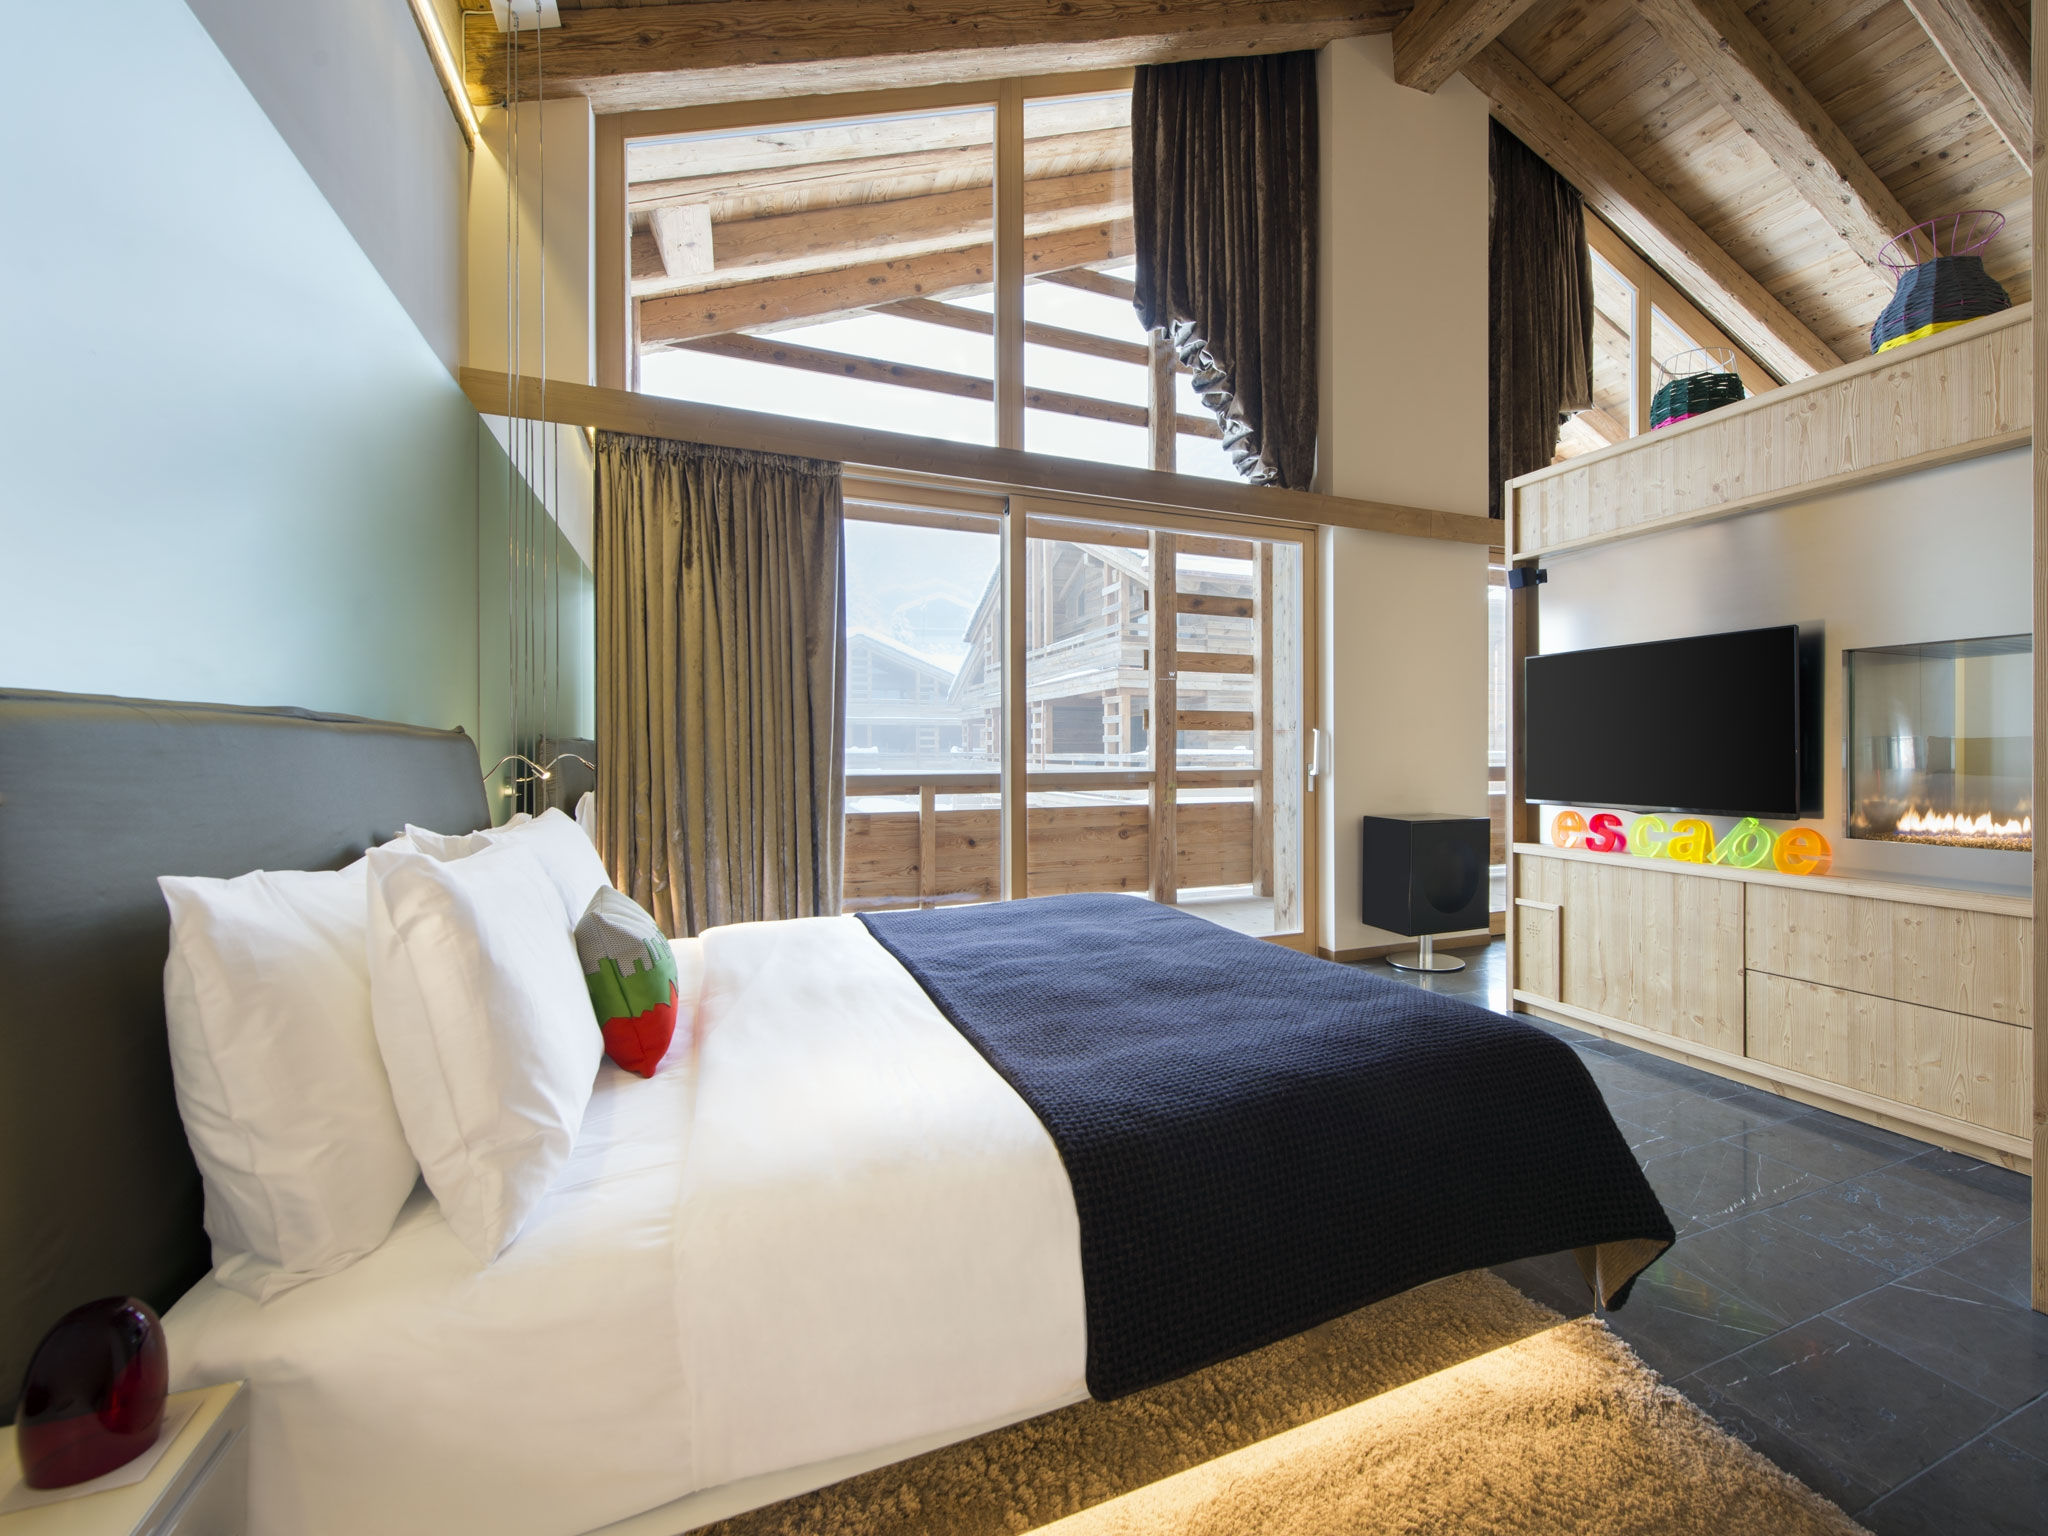 Luxury Ski Resort Verbier